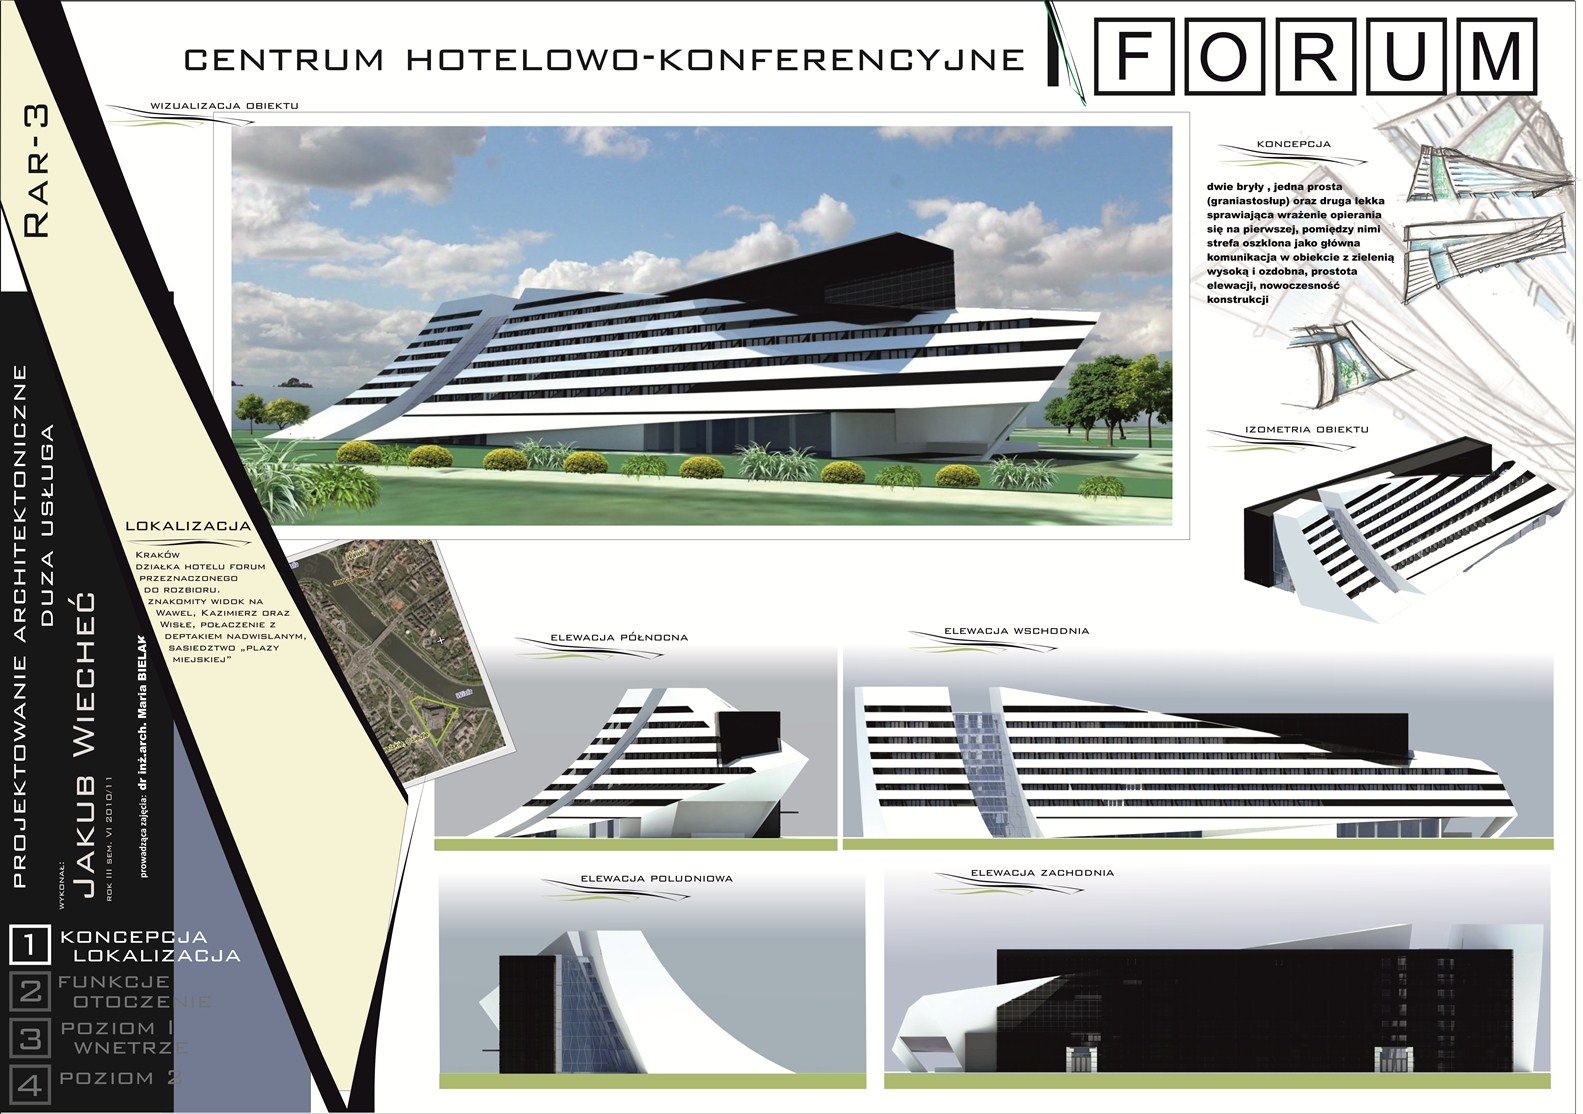 New hotel forum cracow poster 1 by bulaw on deviantart for Architecture poste a poste